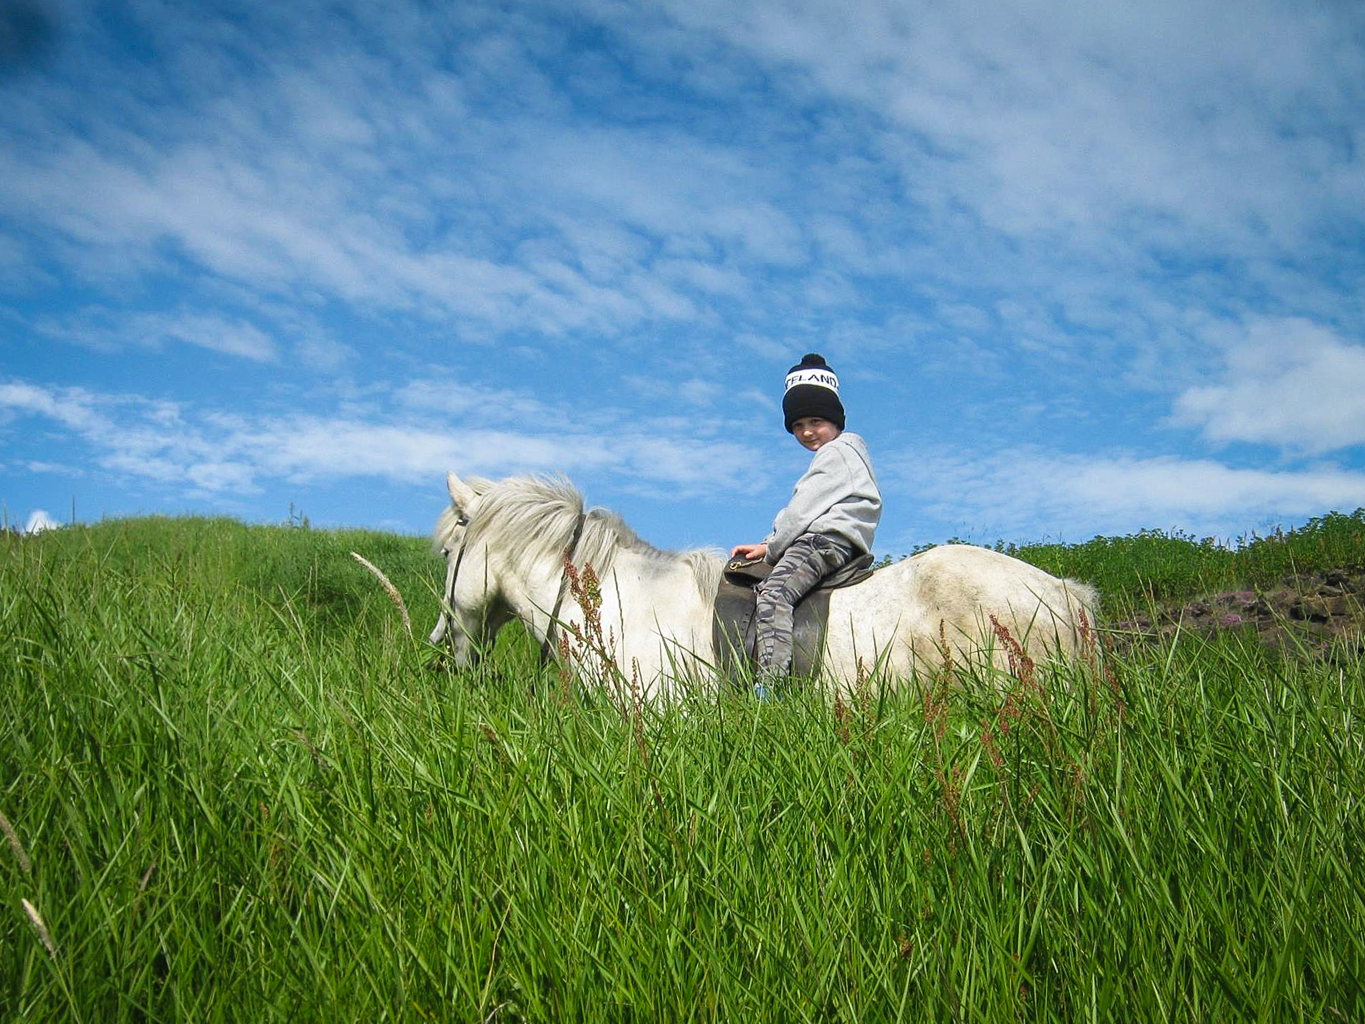 Horse riding is a family friendly and fun activity in Iceland.